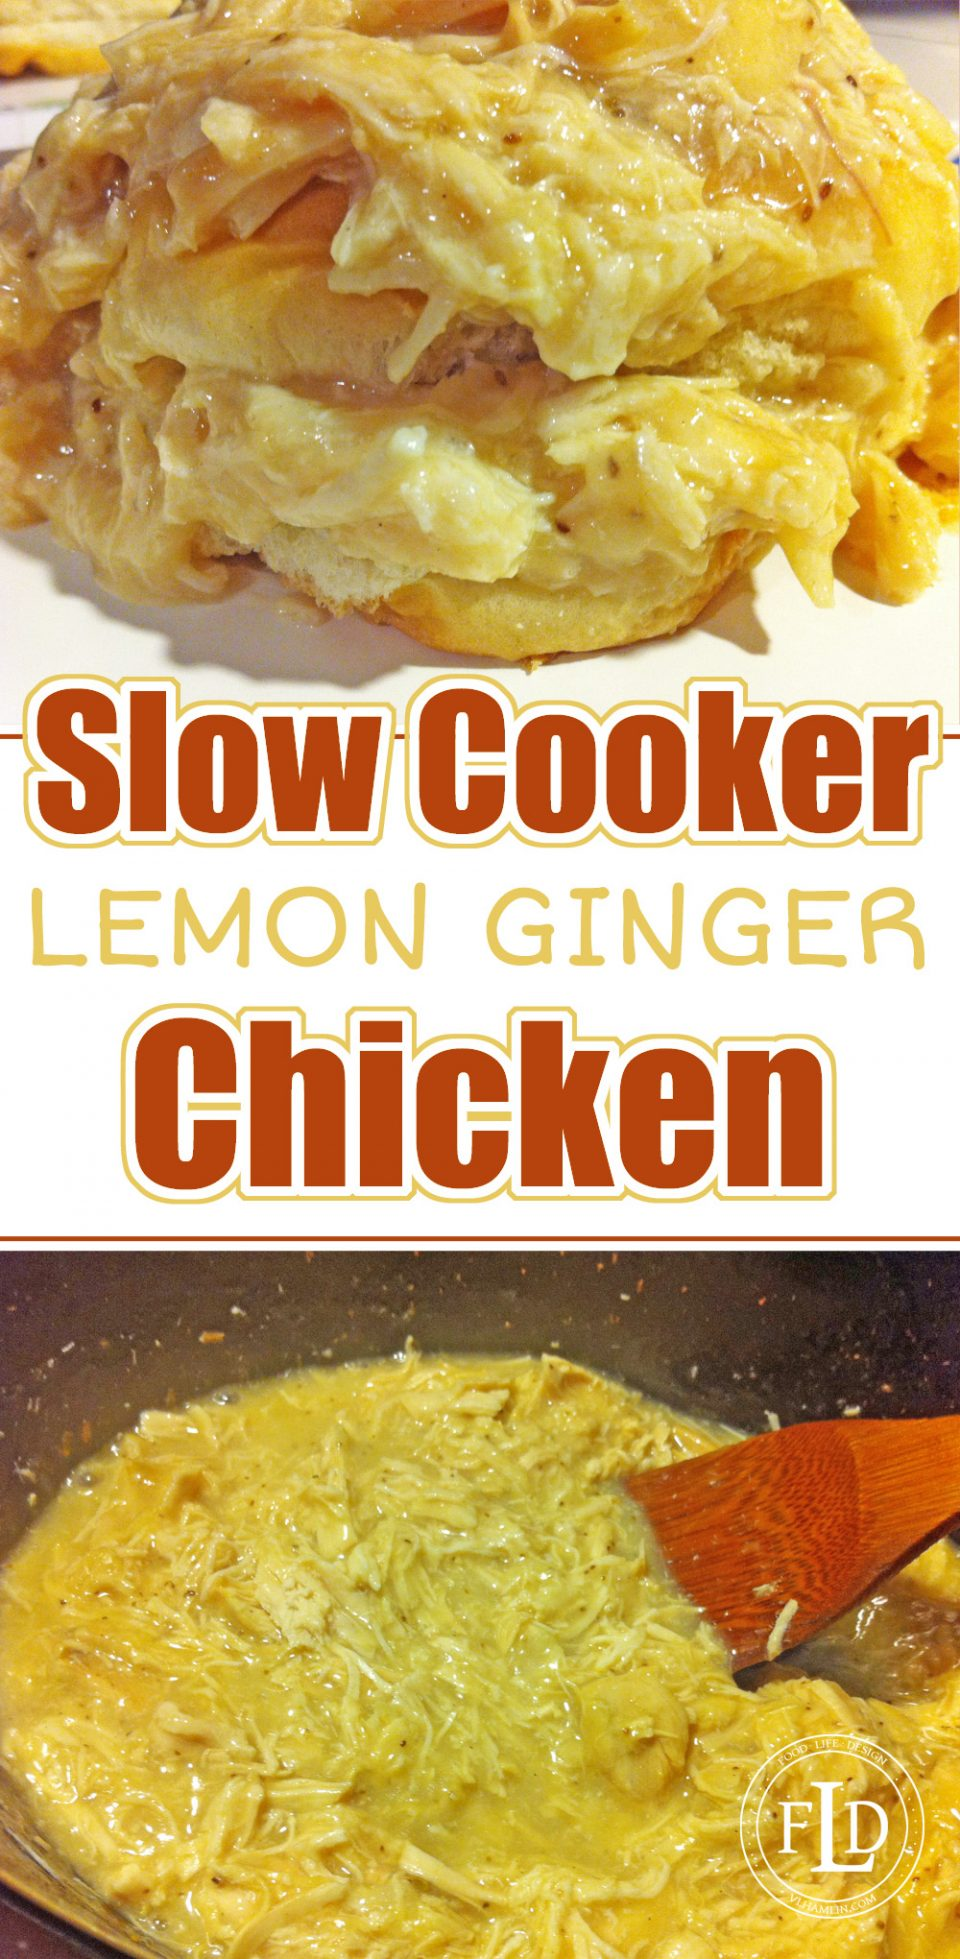 Slow Cooker Lemon Ginger Chicken